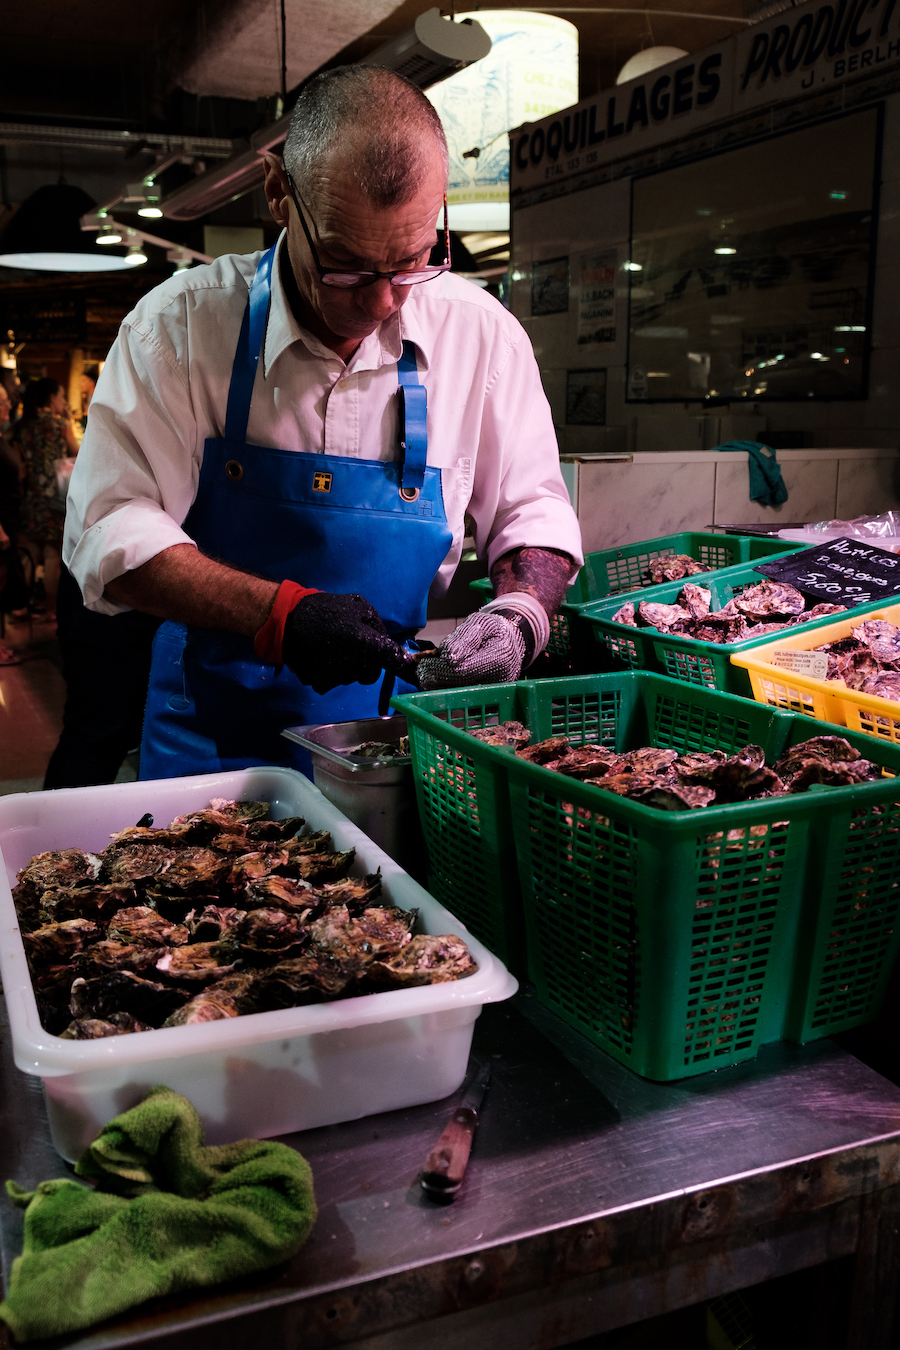 Oyster shucking at Les Halles De Sète Market in Sete, Southern France ~ By Ben Holbrook from DriftwoodJournals.com7